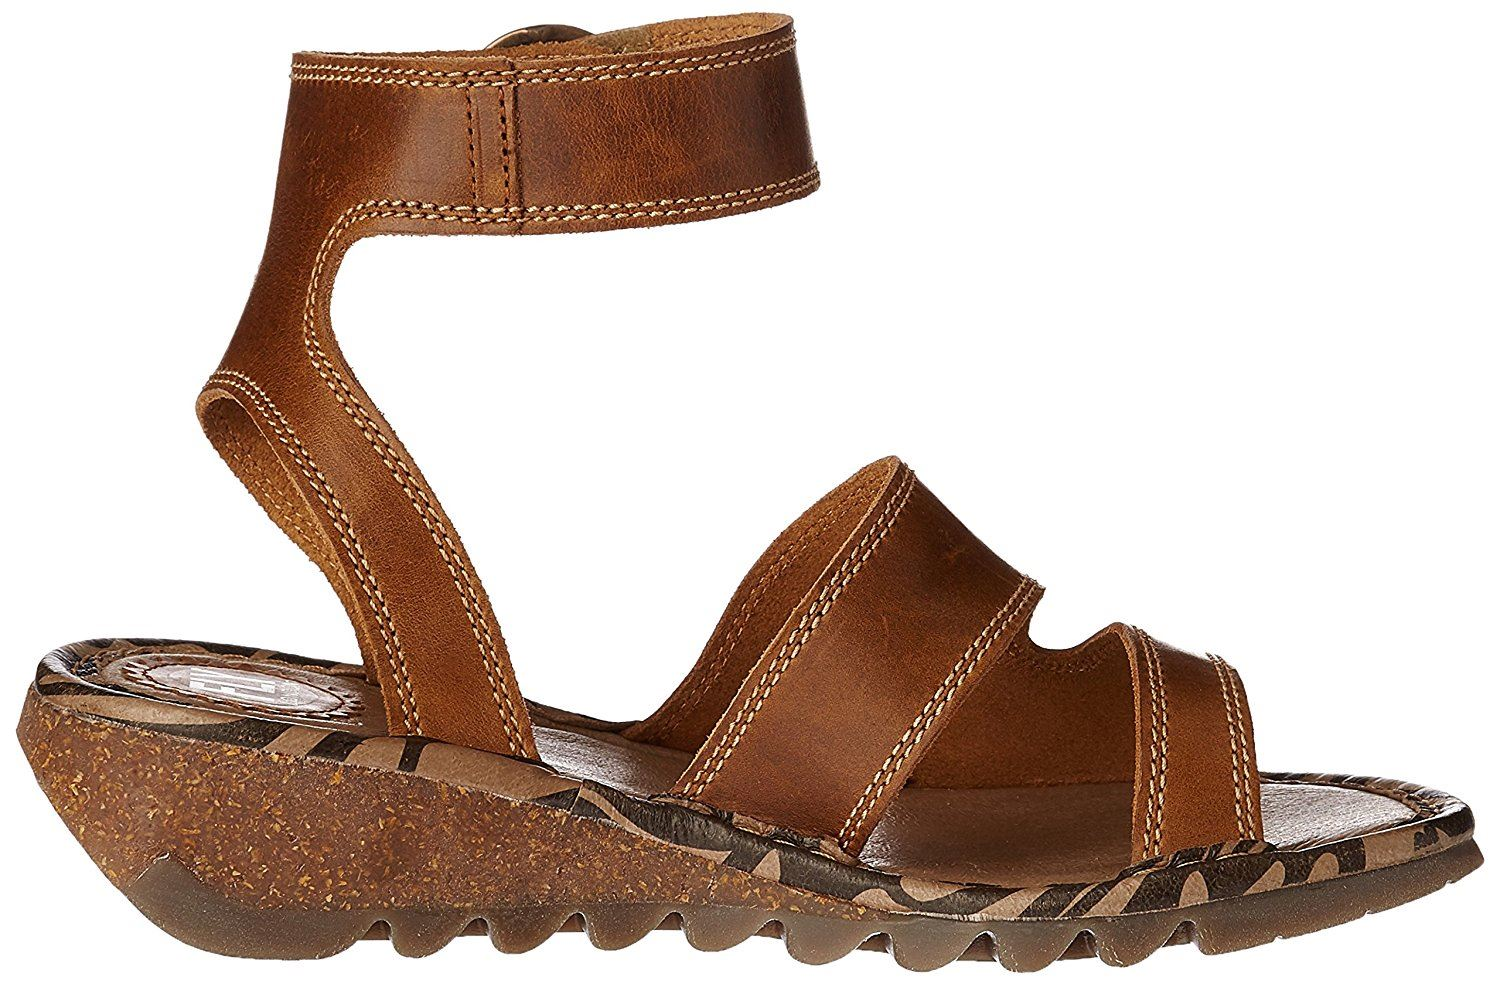 Fly-London-TILY722FLY-Ladies-Strappy-Gladiator-Style-Leather-Wedge-Sandals thumbnail 15